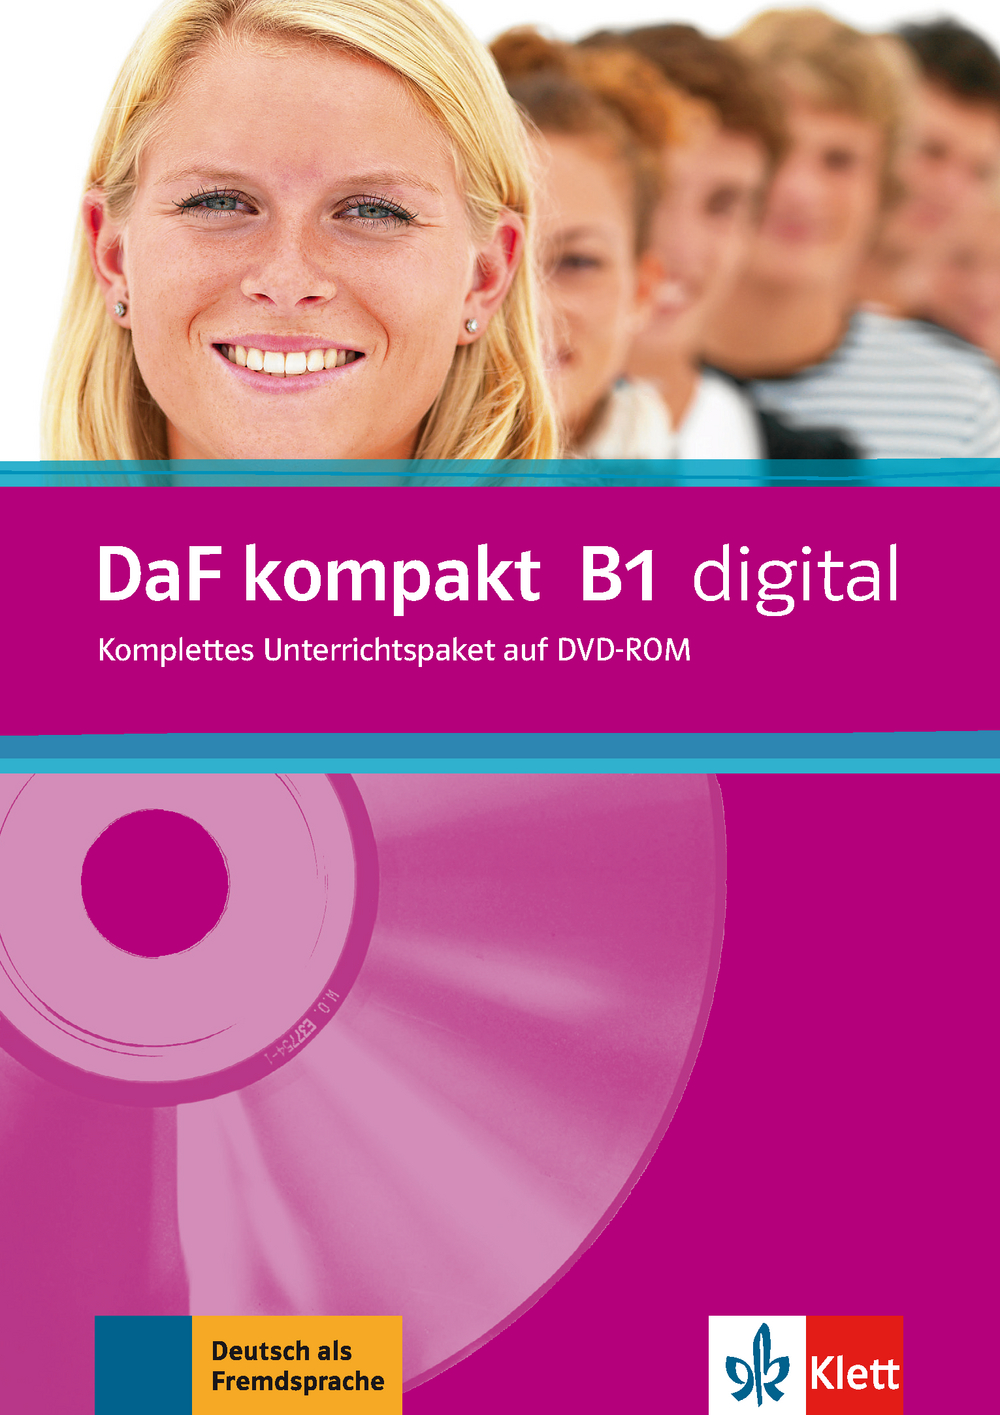 DaF kompakt B1 digital